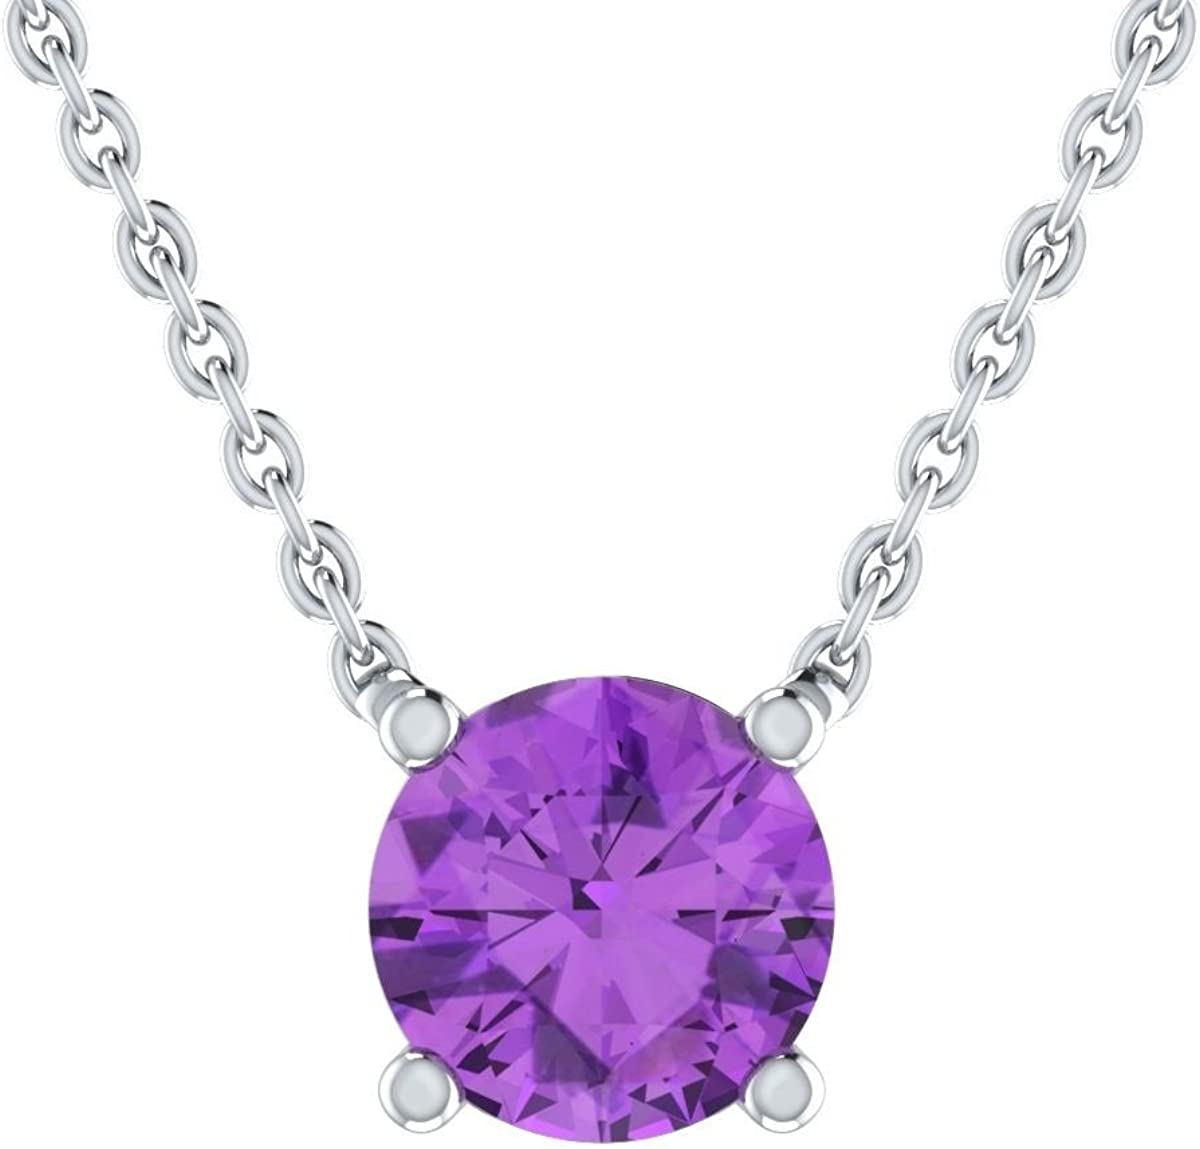 Solitaire Round Pendant Simulated Lavender .925 Sterling Silver Charm